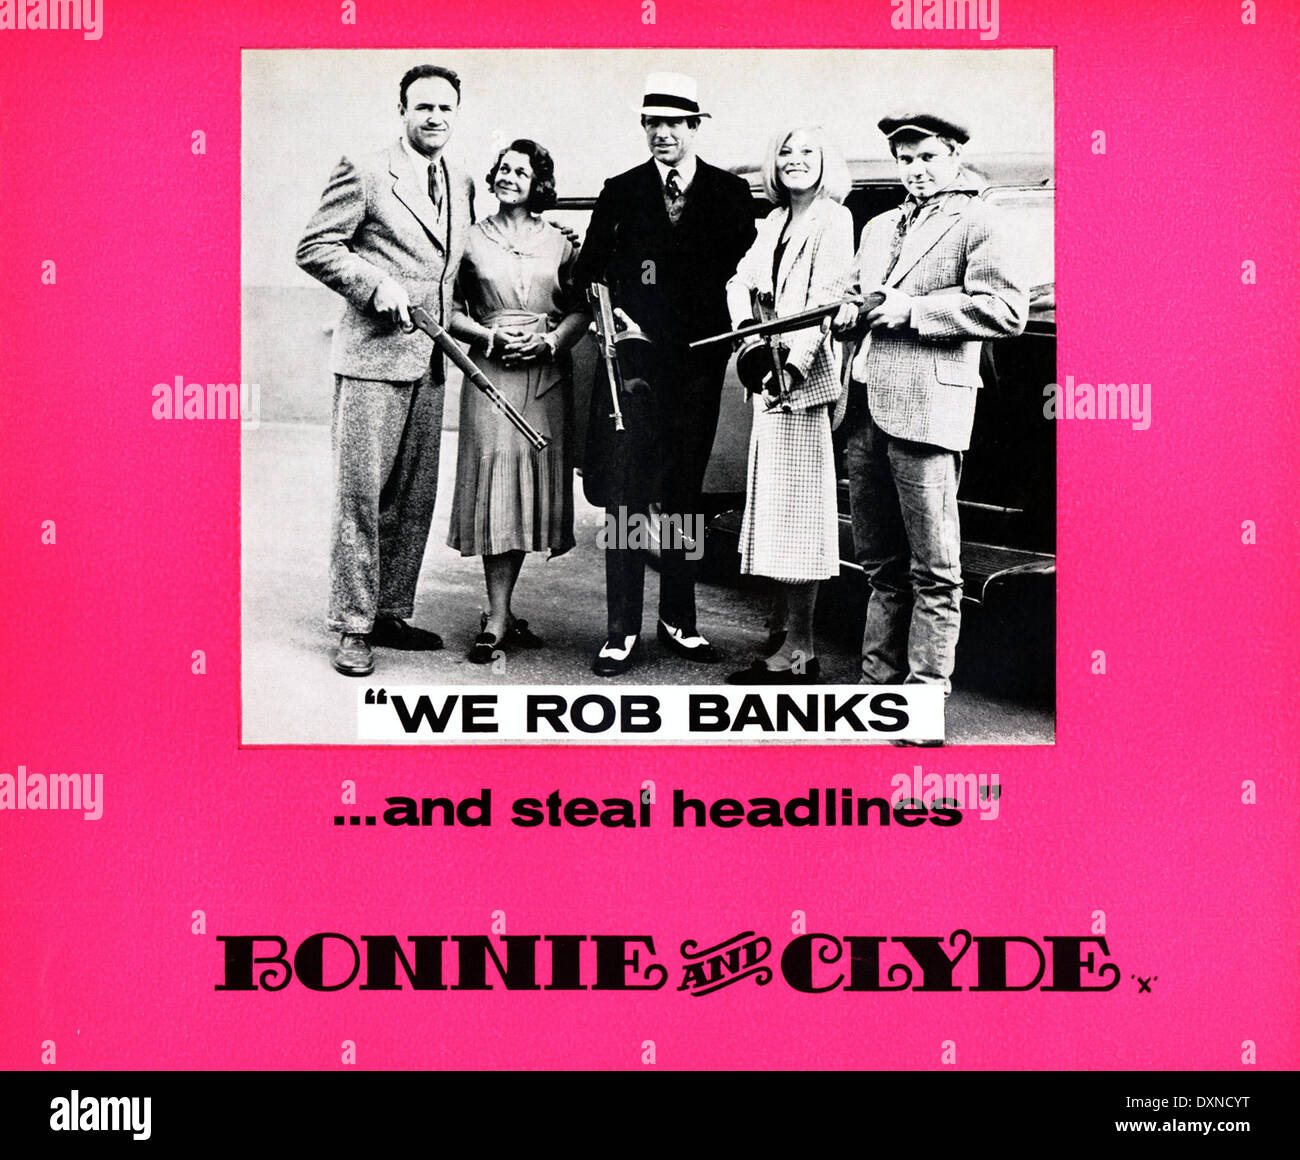 Bonnie Clyde Stock Photos & Bonnie Clyde Stock Images - Alamy